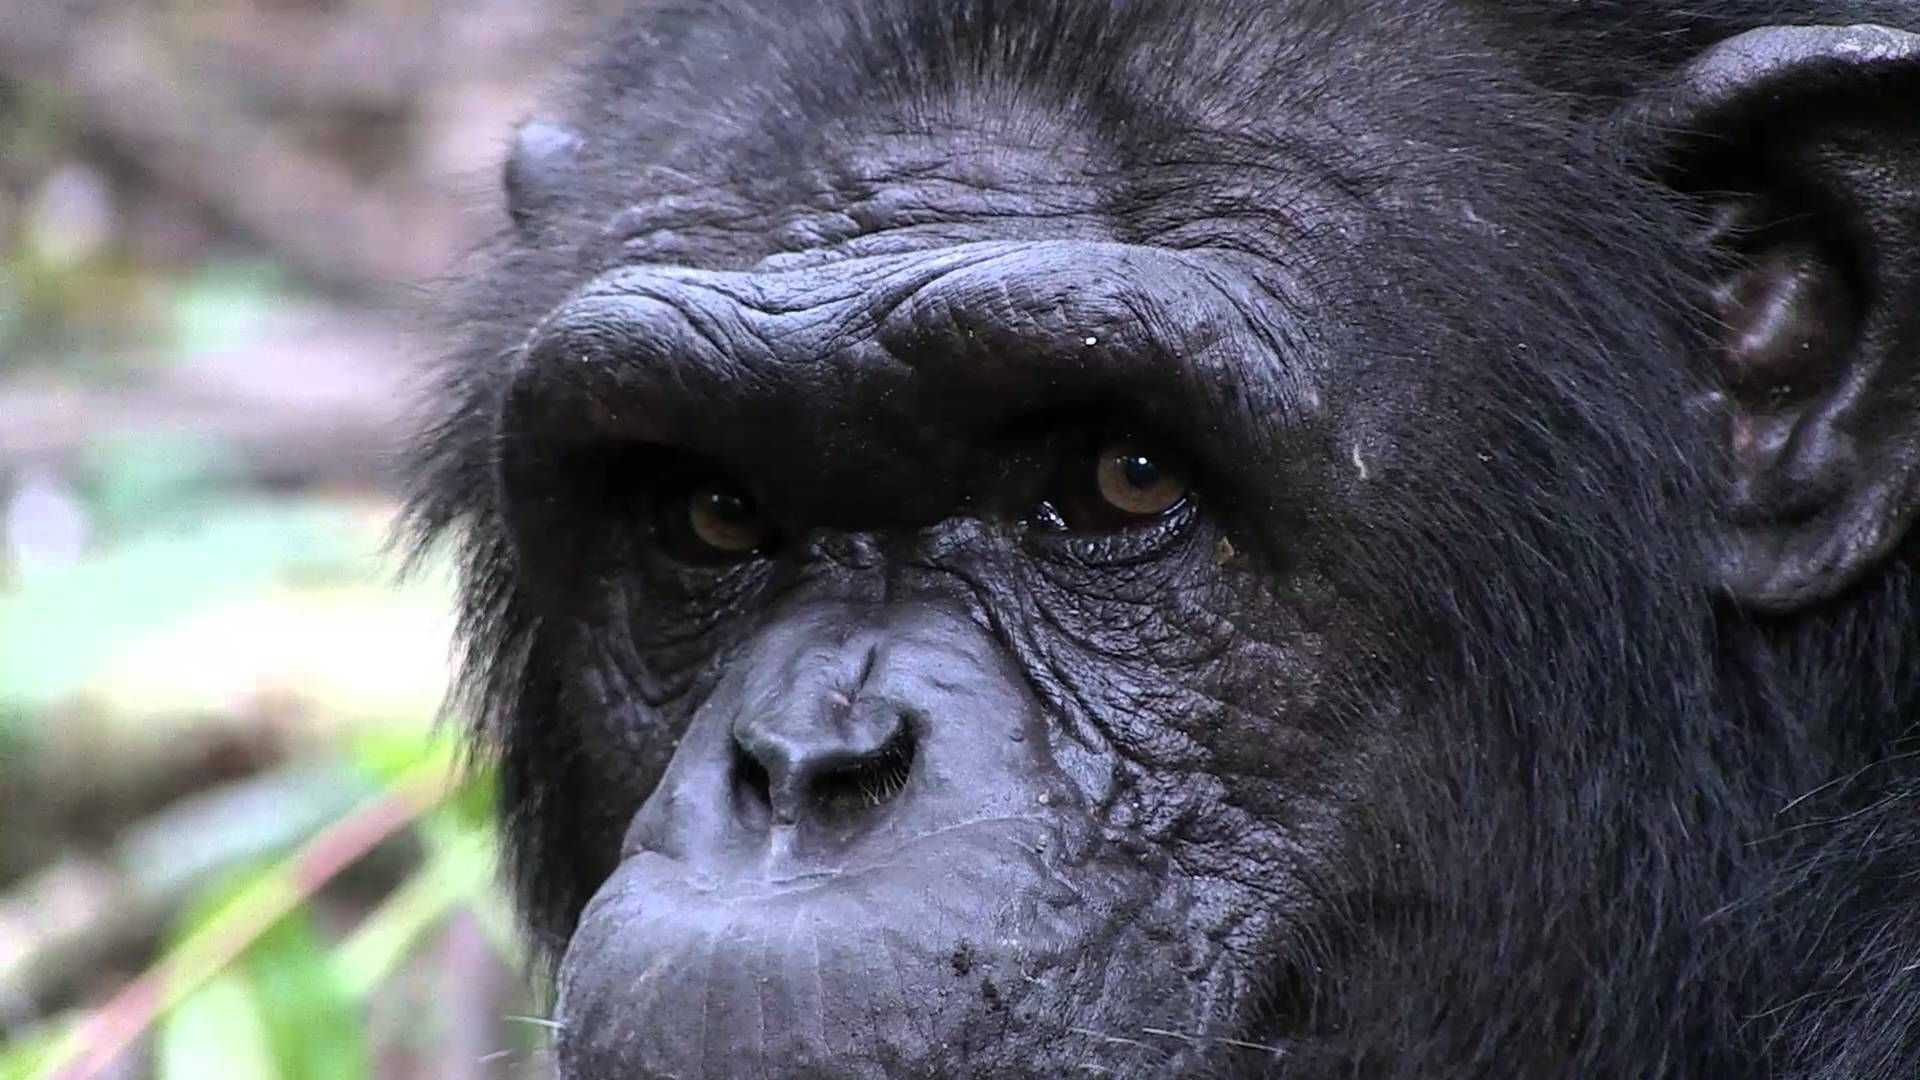 Rescued Chimpanzee Experiences New Forested Enclosure For the First Time